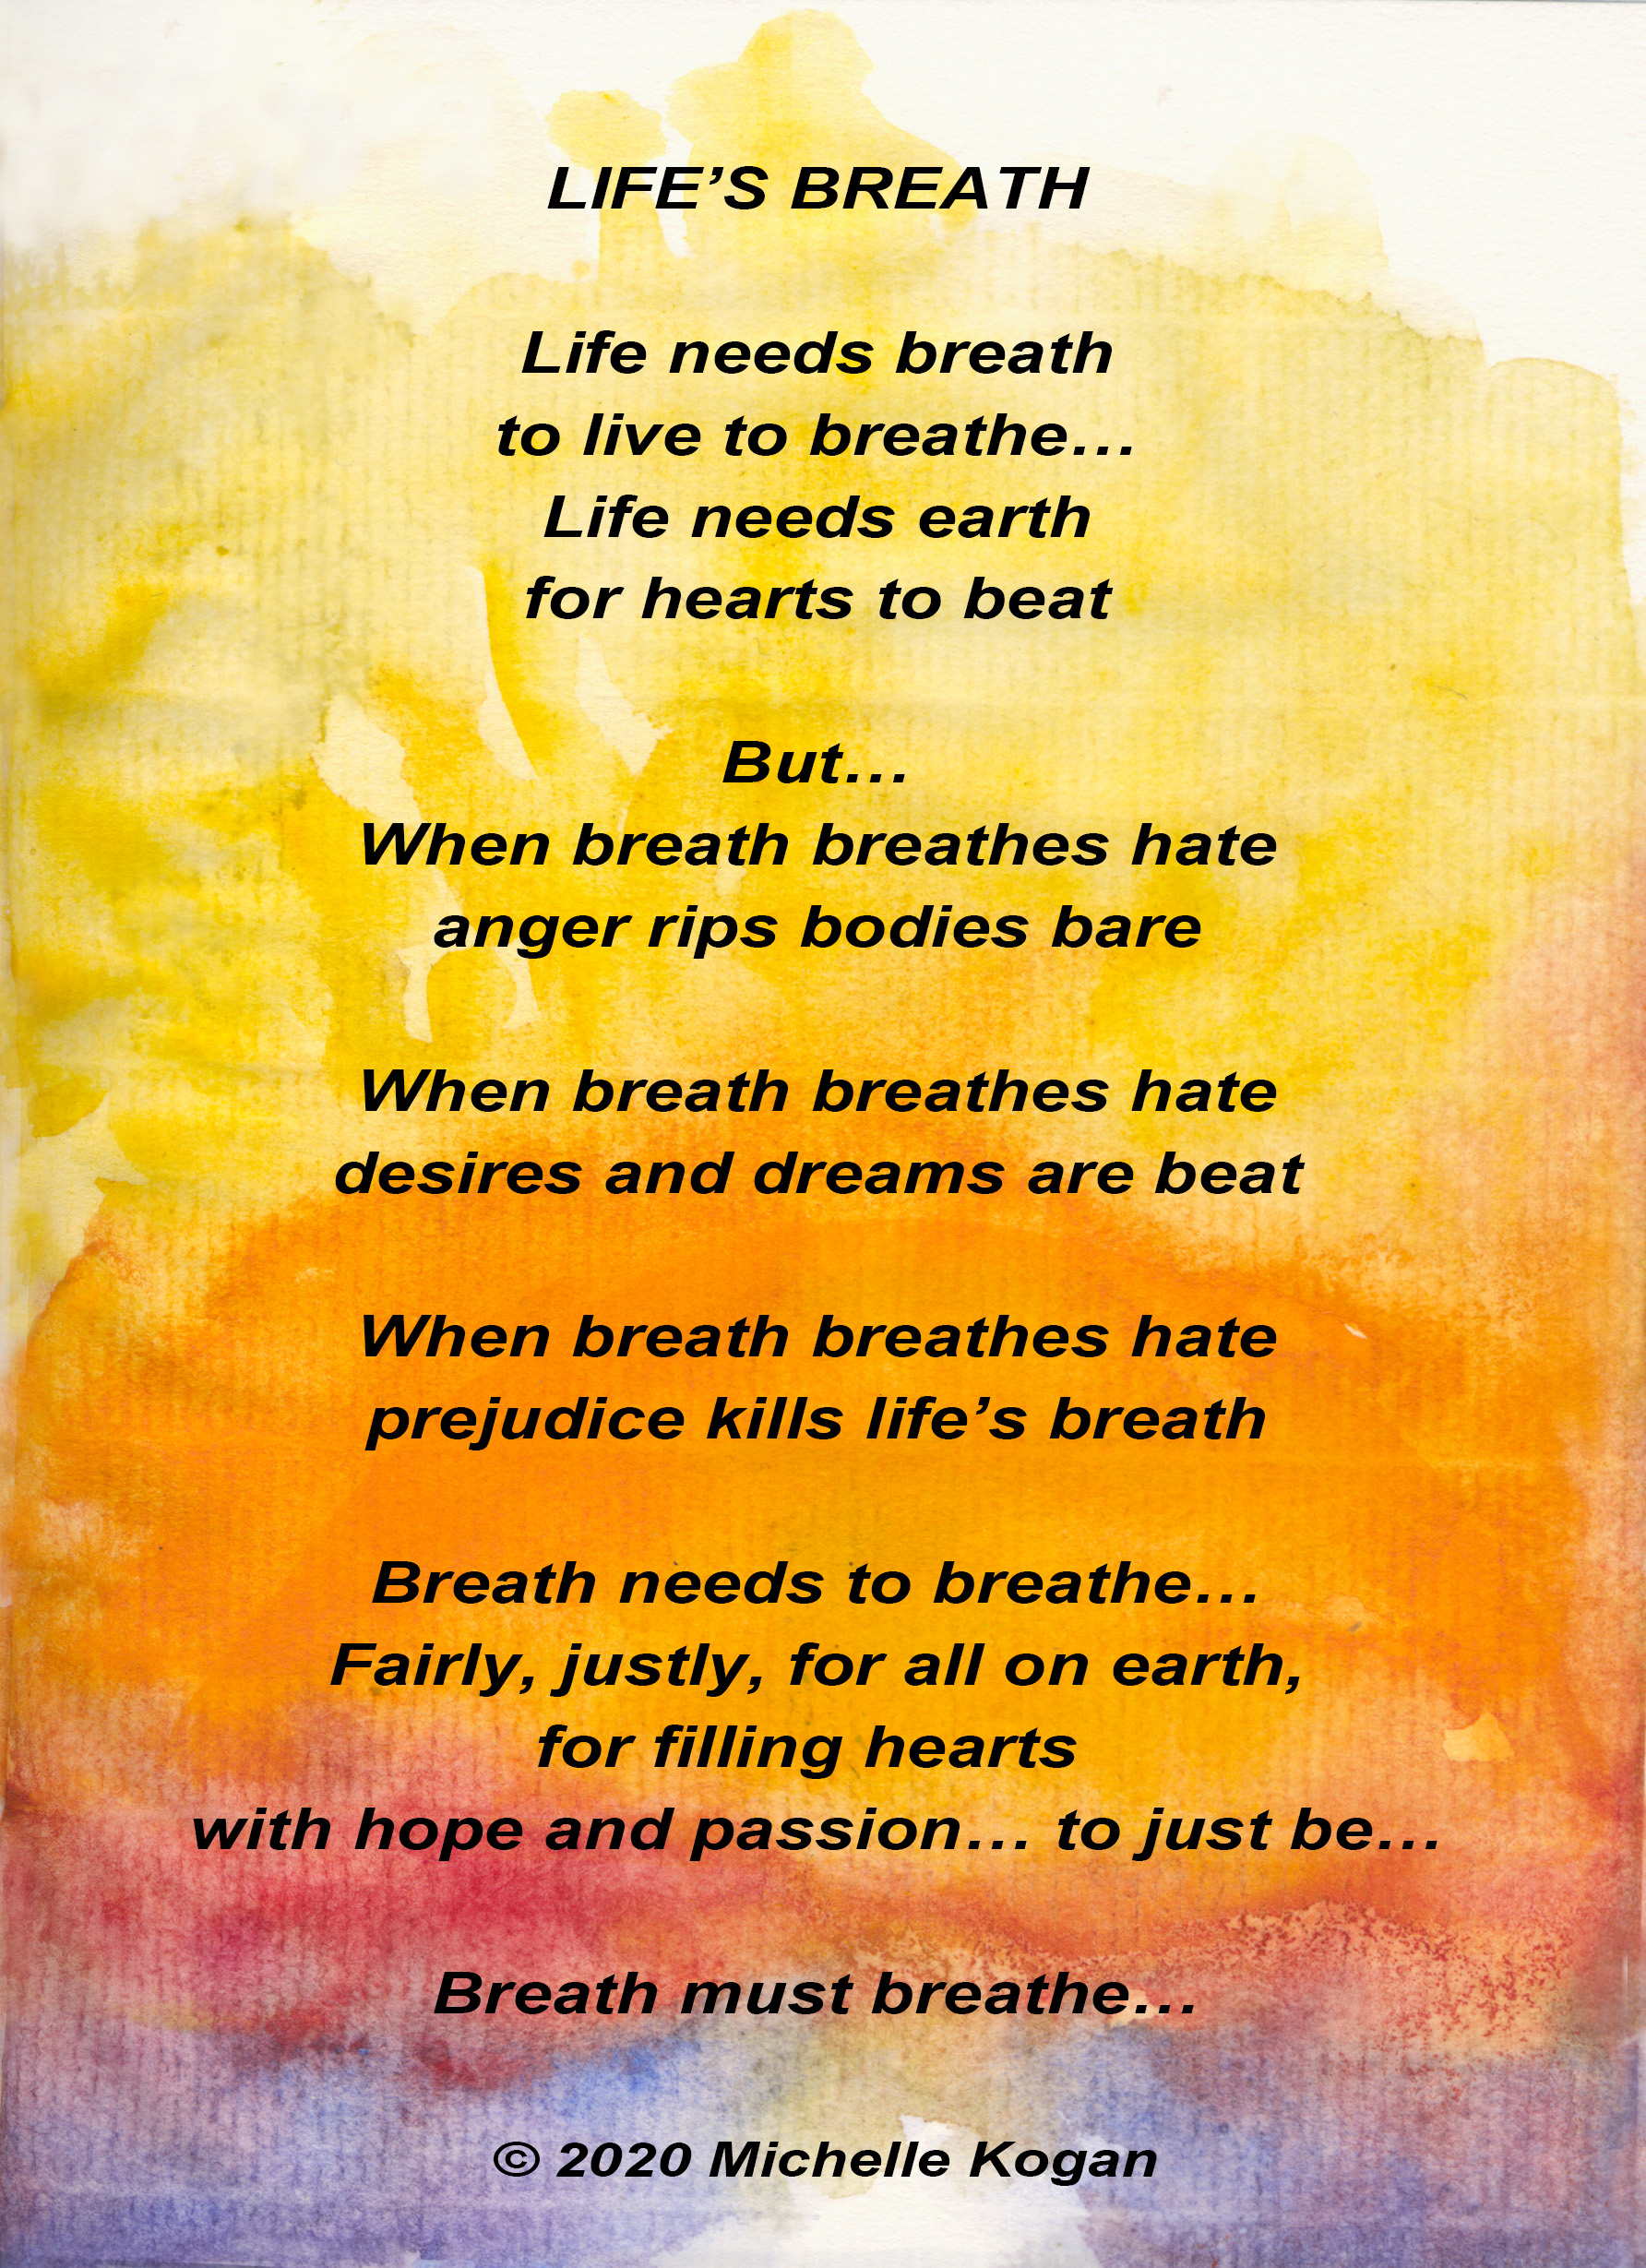 Life's Breath poem on sun background 6-4-29-2020